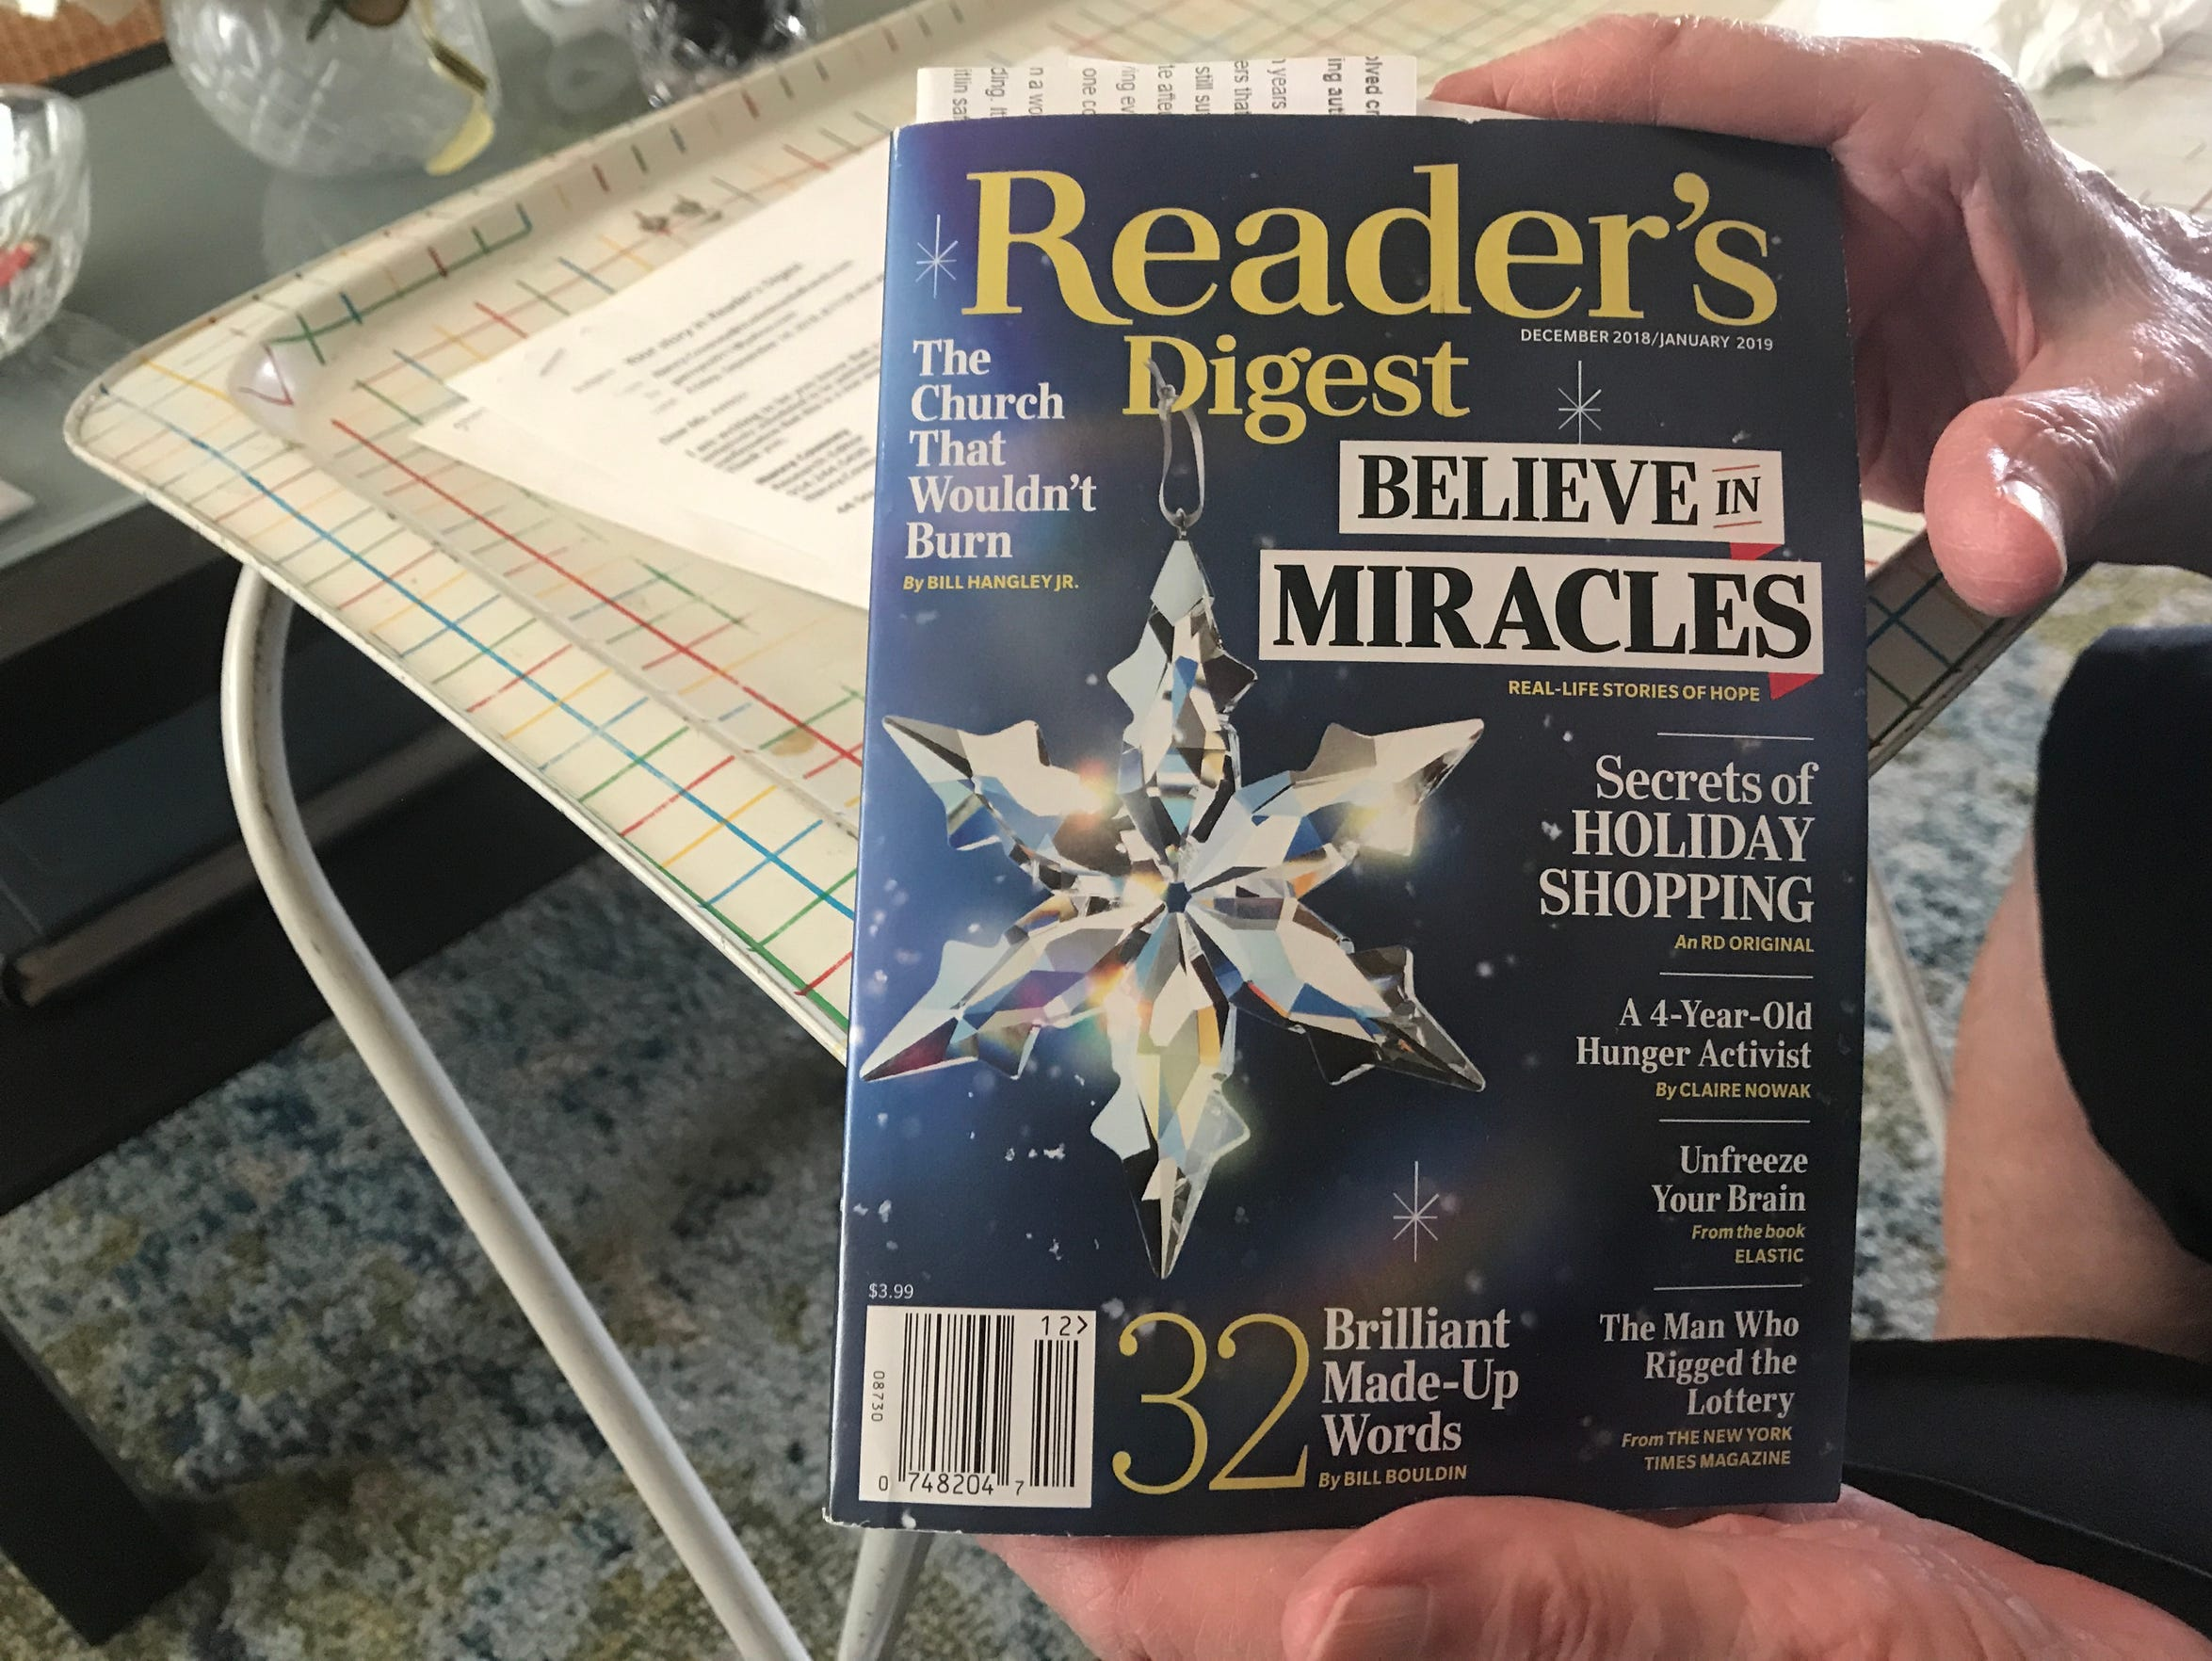 Gloria Arrroyo, an 89-year-old Phoenix woman, holds the December 2018/January 2019 Reader's Digest magazine. A story she submitted in 2017 was featured in the magazine.